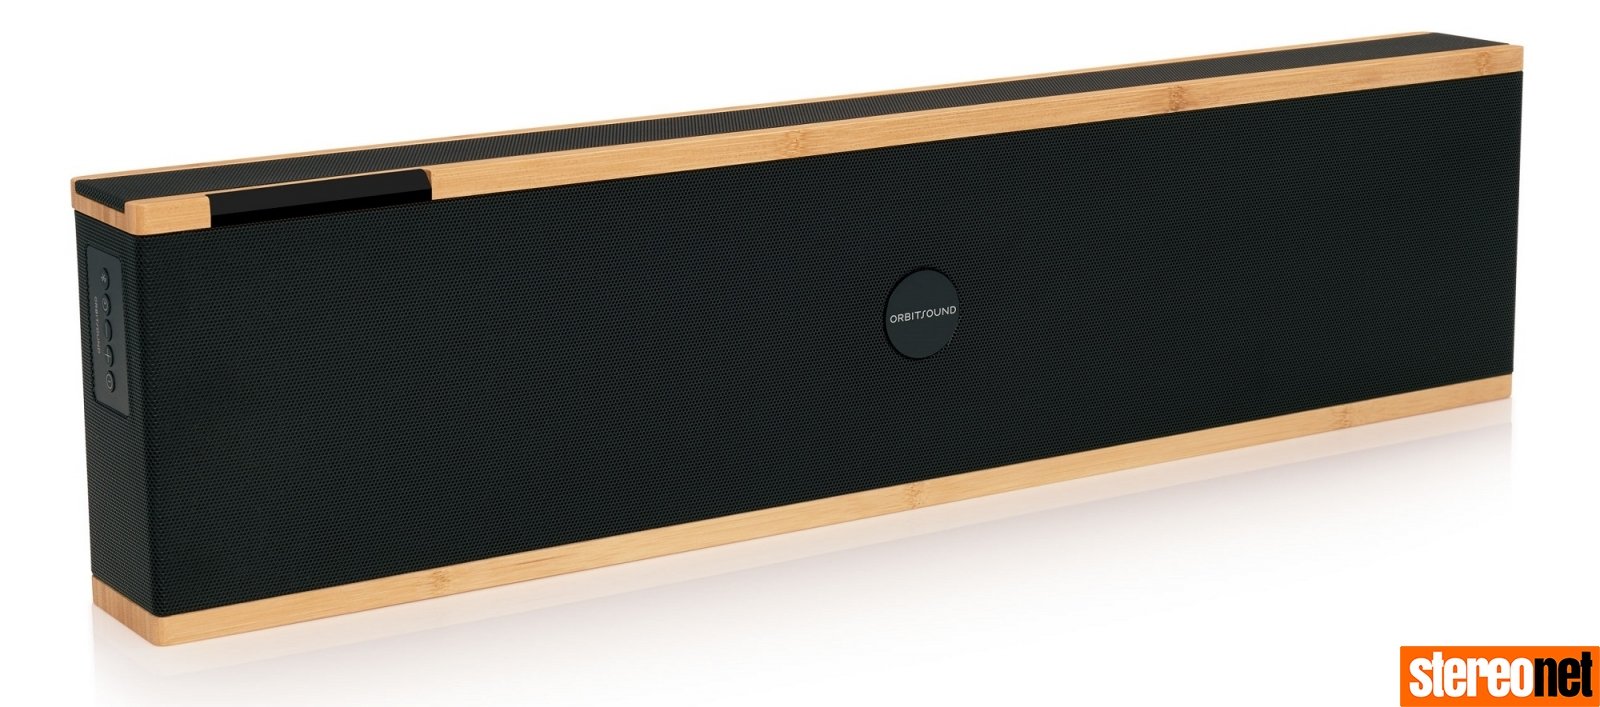 Orbitsound P70W V2